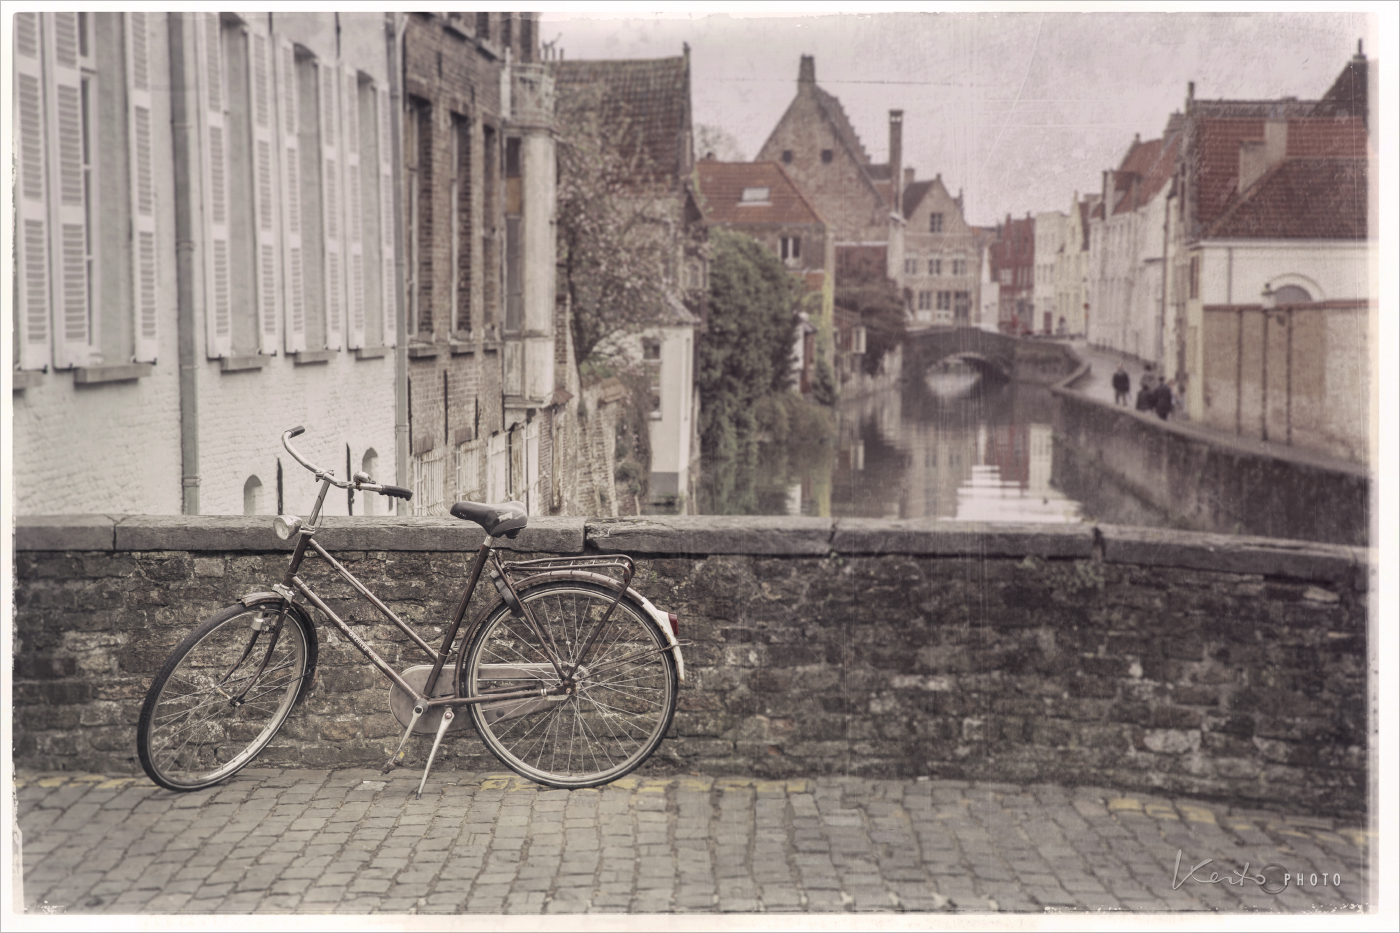 bycicles-in-bruges1